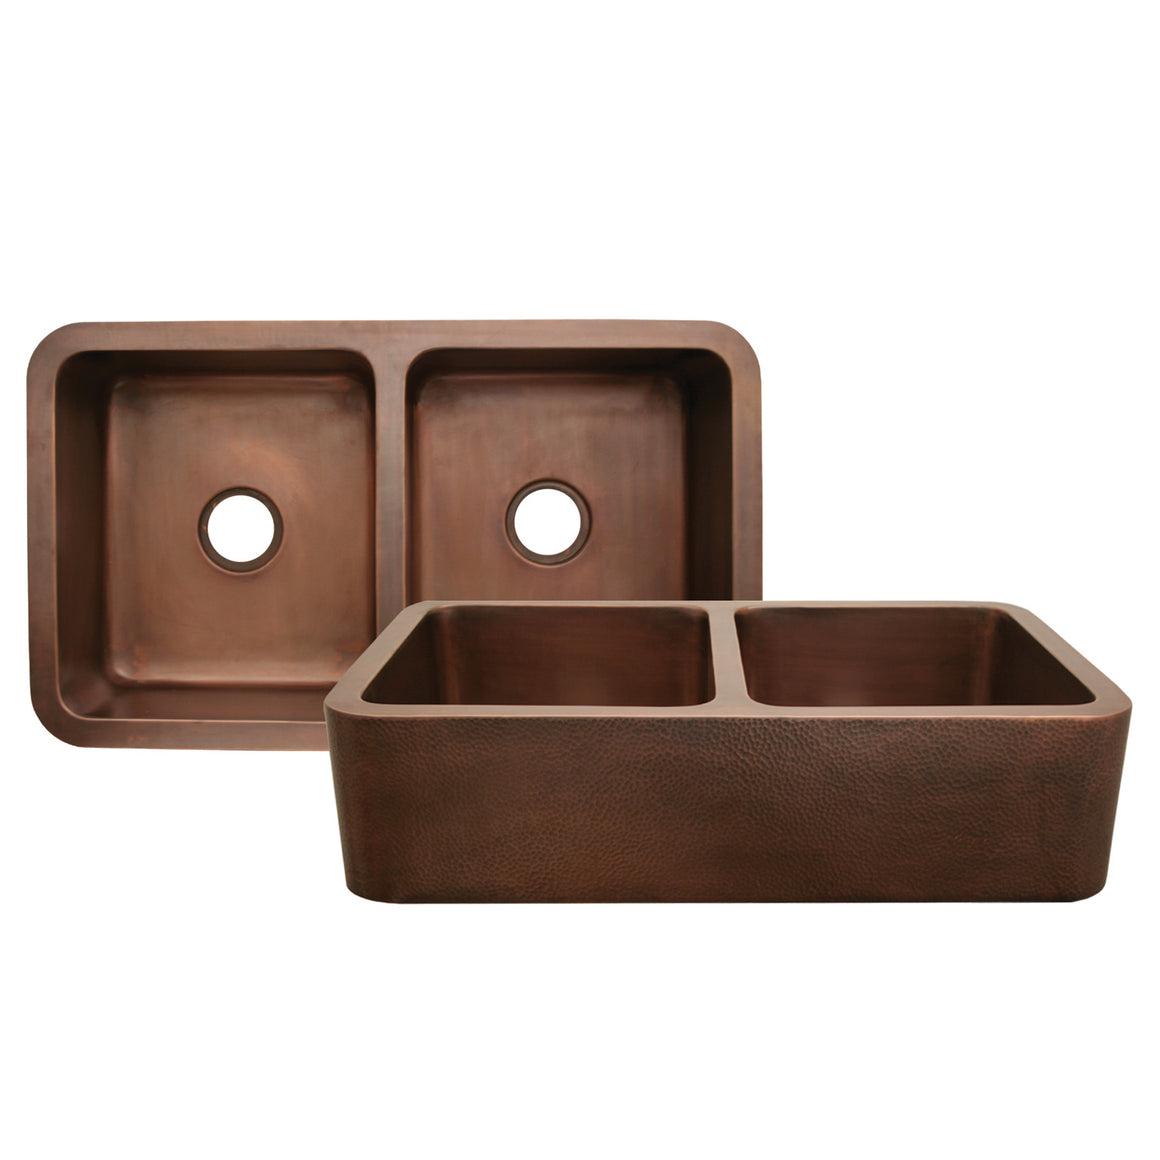 Copperhaus rectangular double bowl undermount sink with hammered front apron